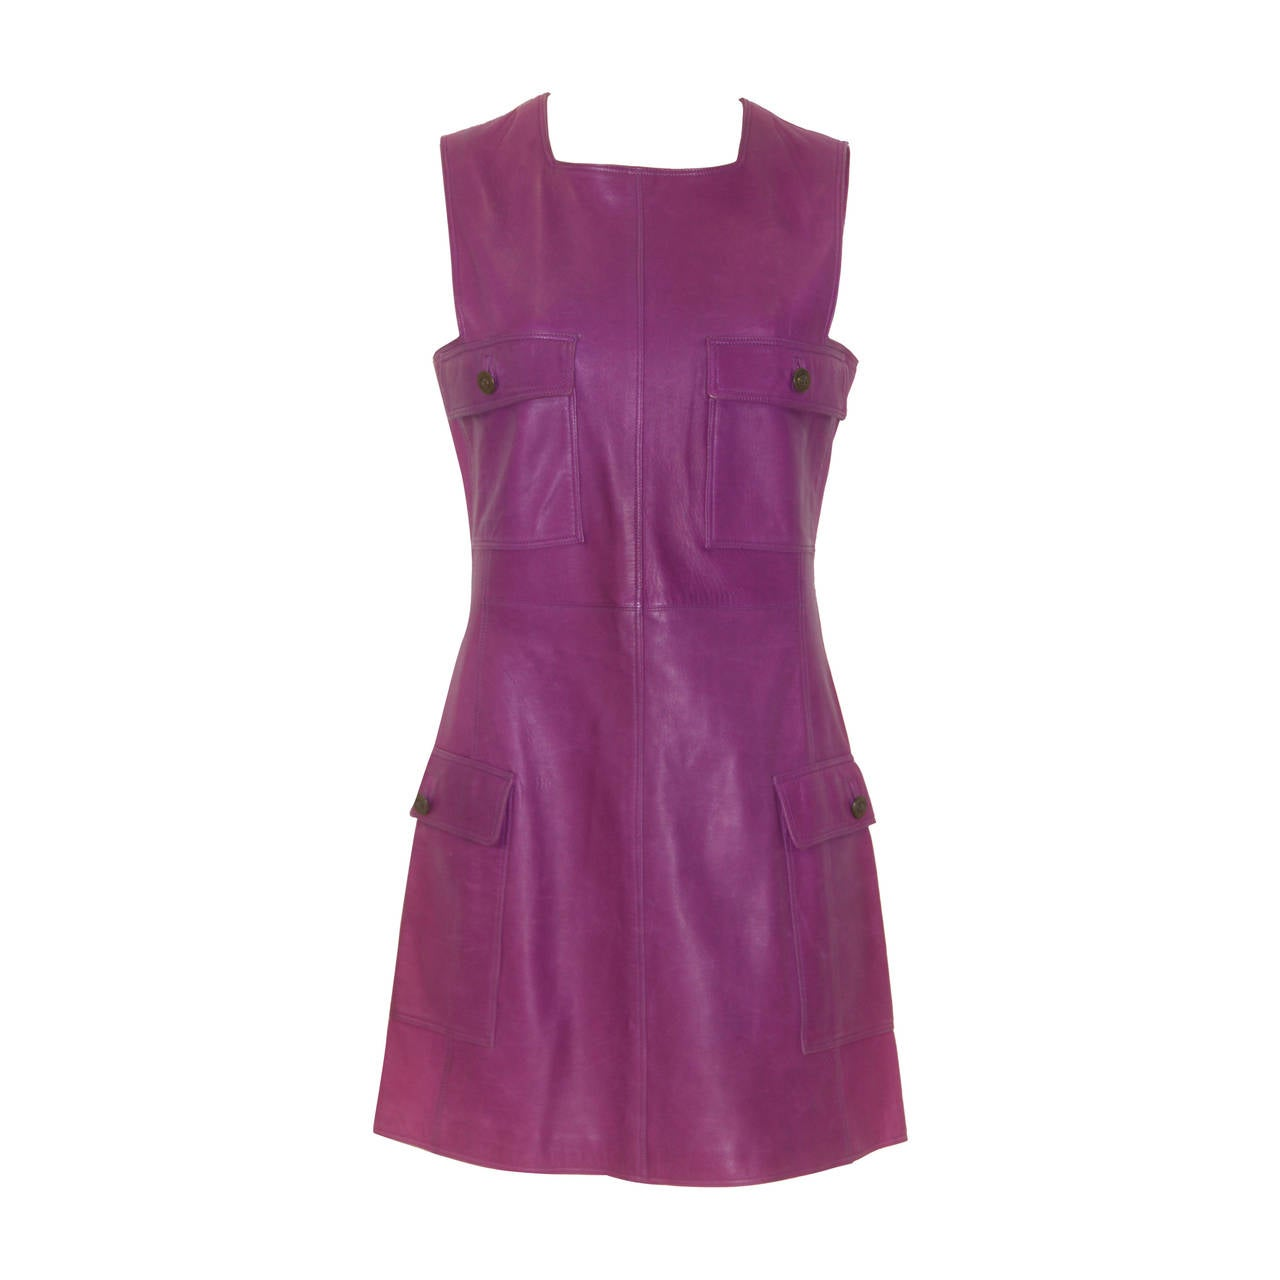 Gianni Versace Leather Pinafore Dress Fall 1995 At 1stdibs